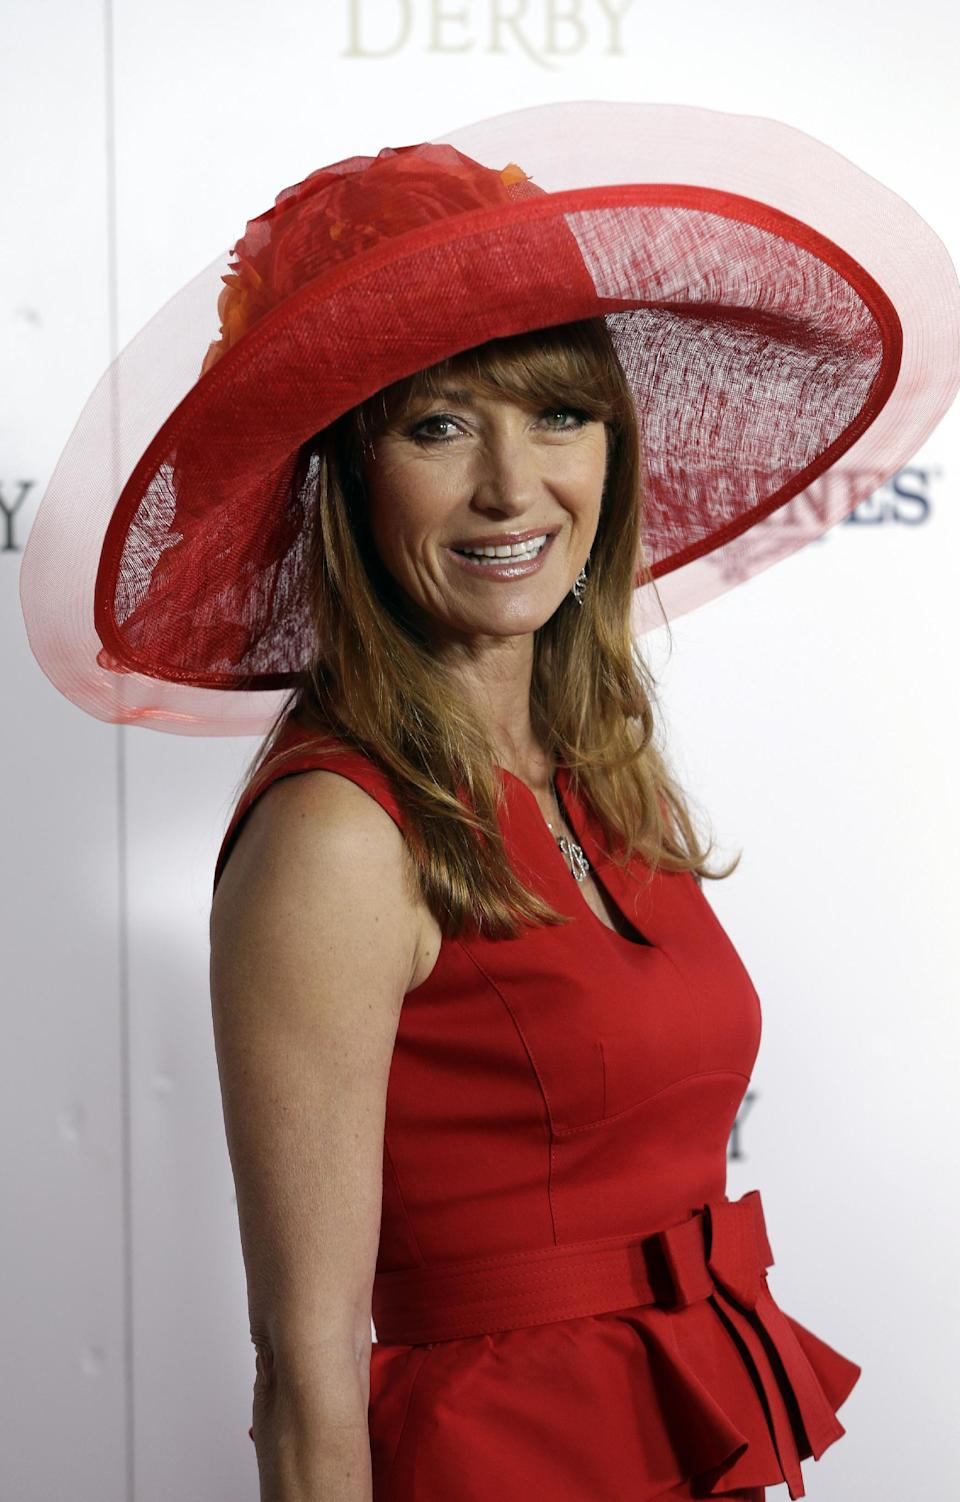 Actress Jane Seymour arrives to attend the 139th Kentucky Derby at Churchill Downs Saturday, May 4, 2013, in Louisville, Ky. (AP Photo/Darron Cummings)